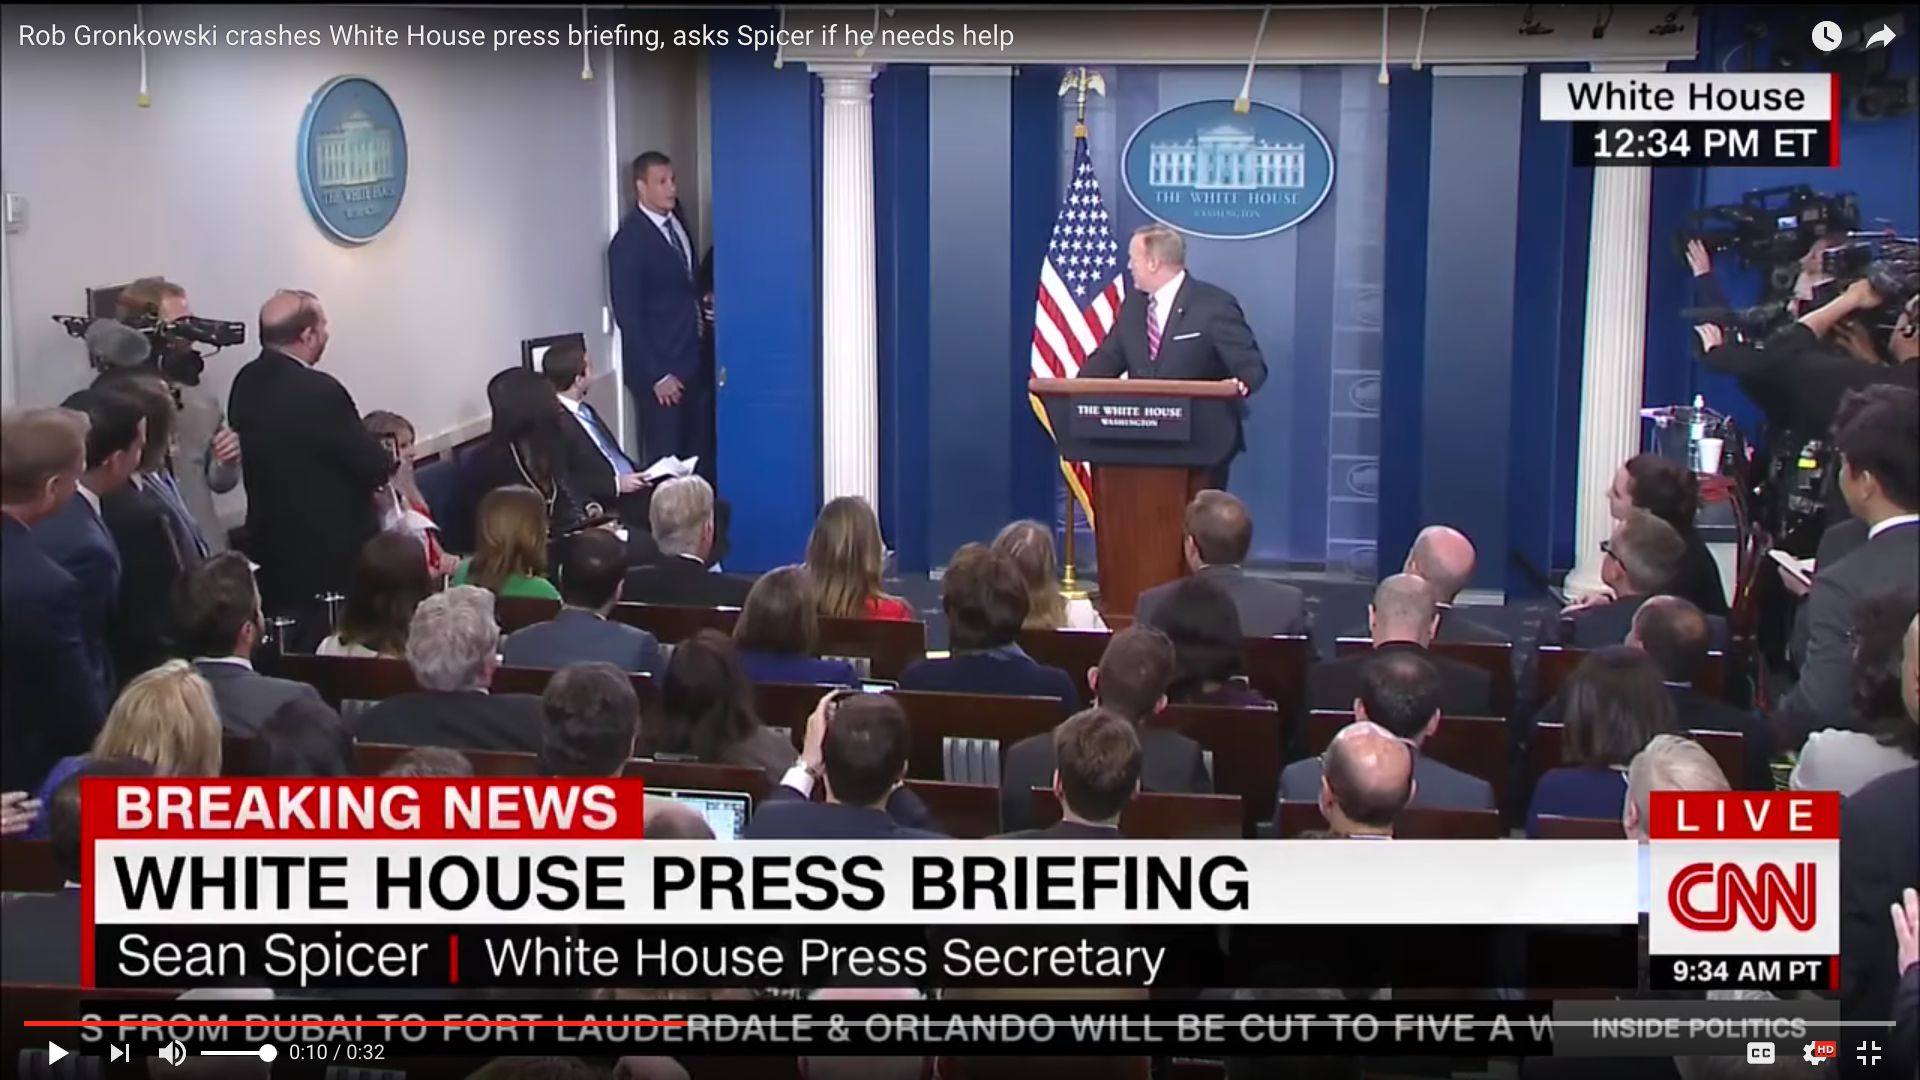 New England Patriots star Rob Gronkowski crashed Wednesdays White House press conference